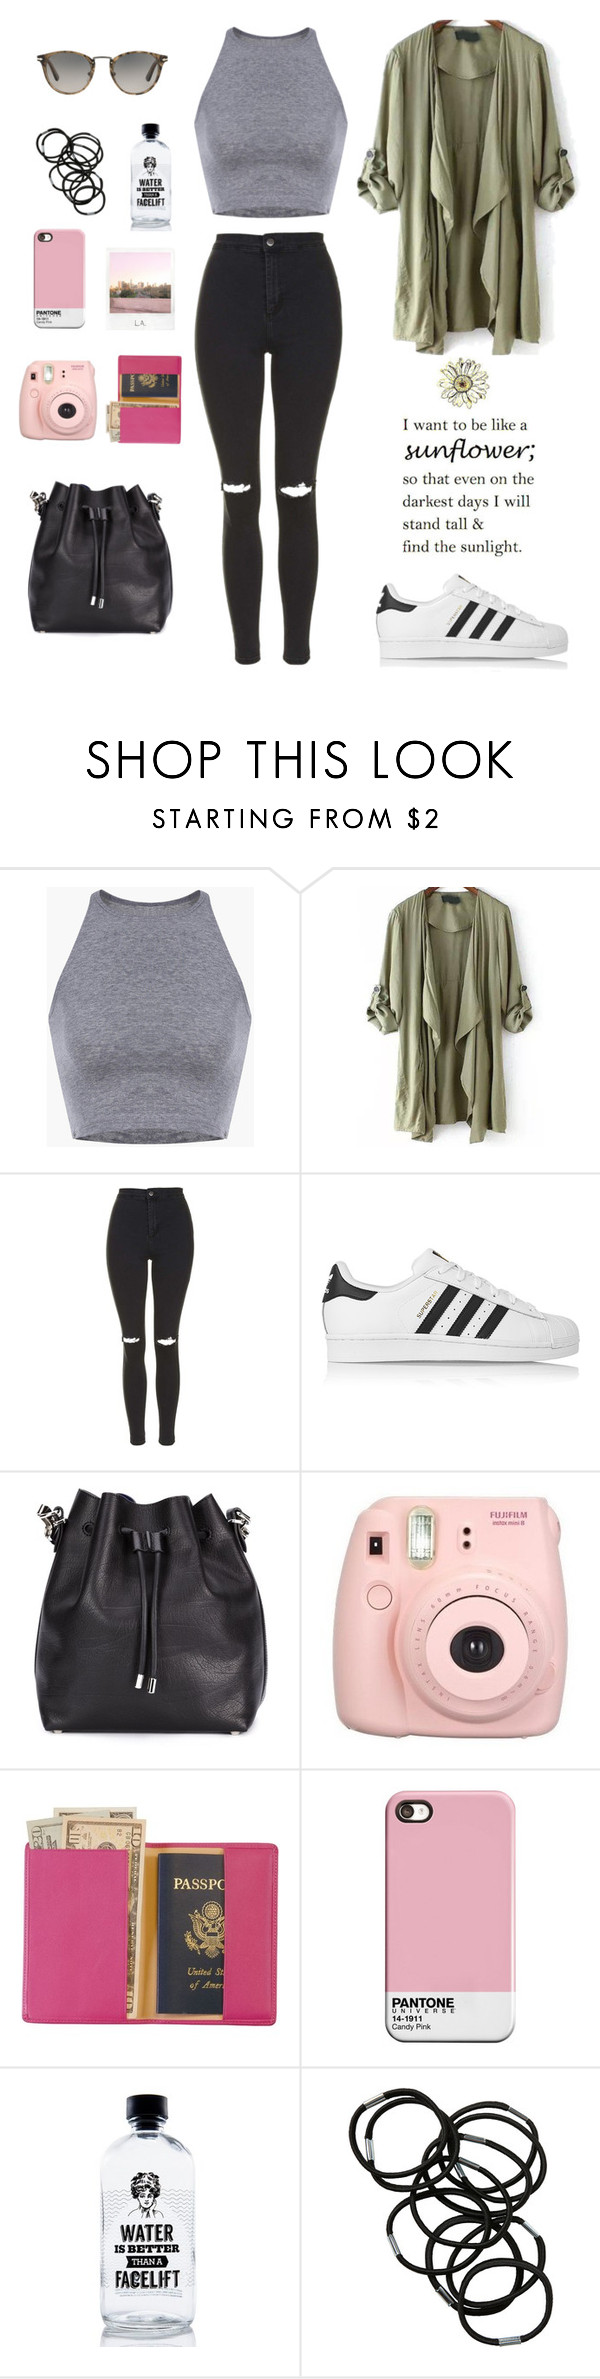 Untitled #63 by marylobo99 on Polyvore featuring Topshop, adidas Originals, Proenza Schouler, Royce Leather, Persol, Monki, Aquaovo and Polaroid